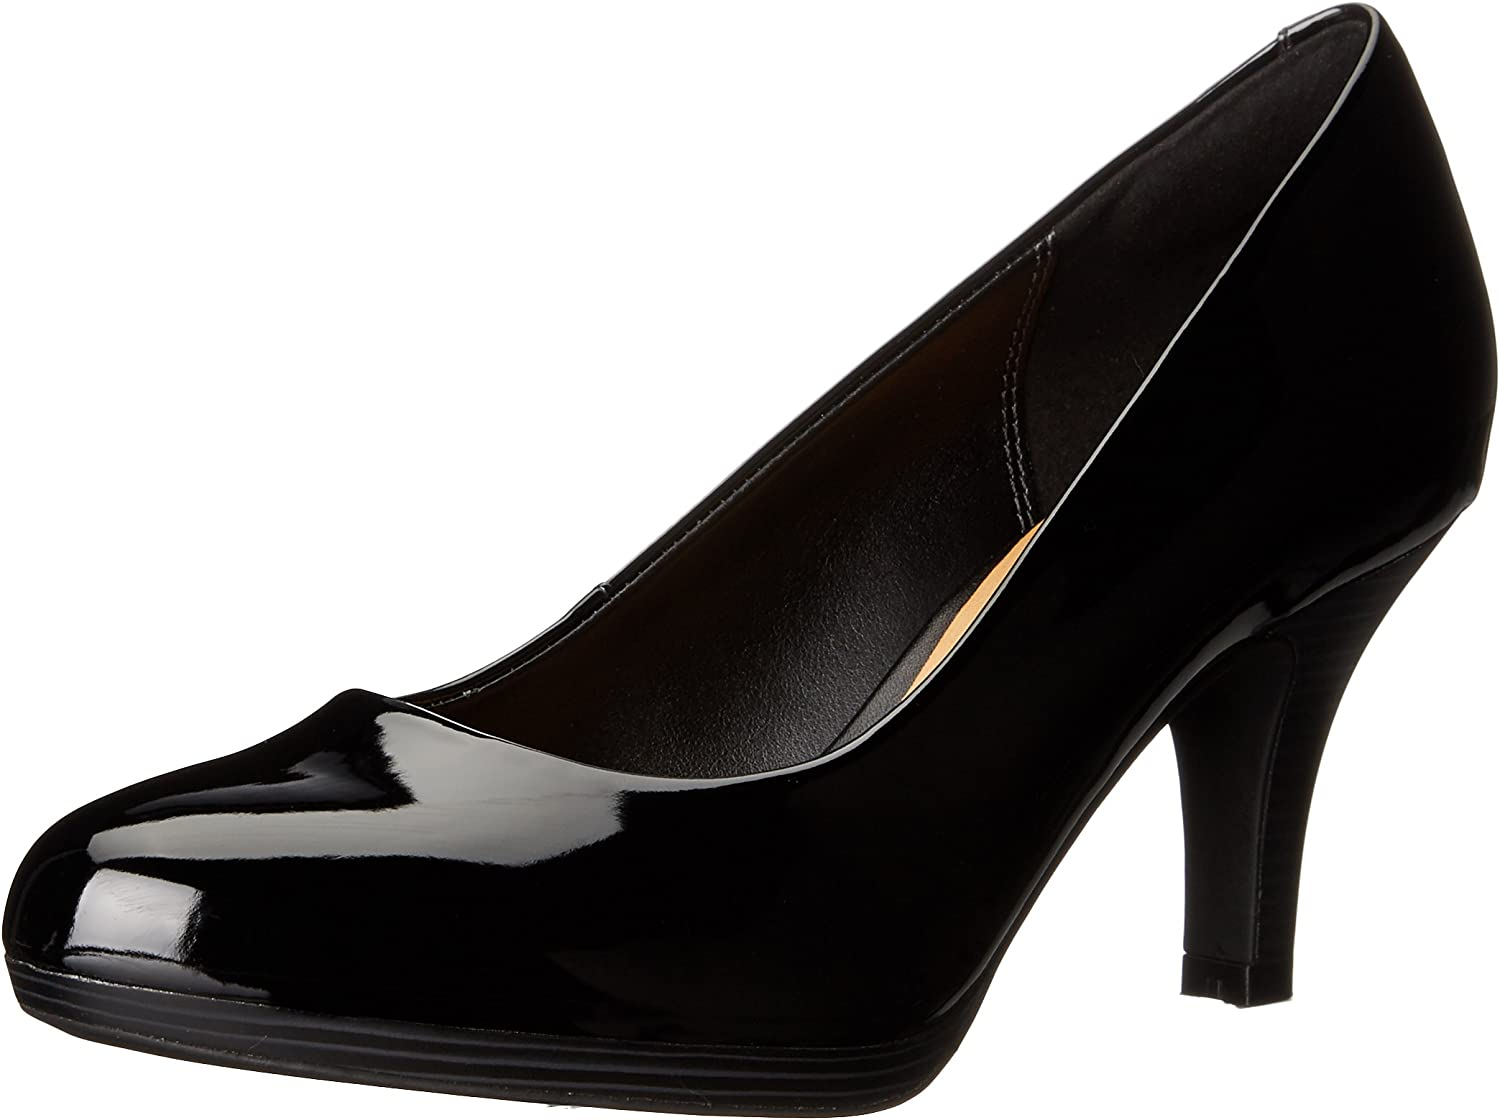 Clarks Women's Brenna Maple Dress Pump